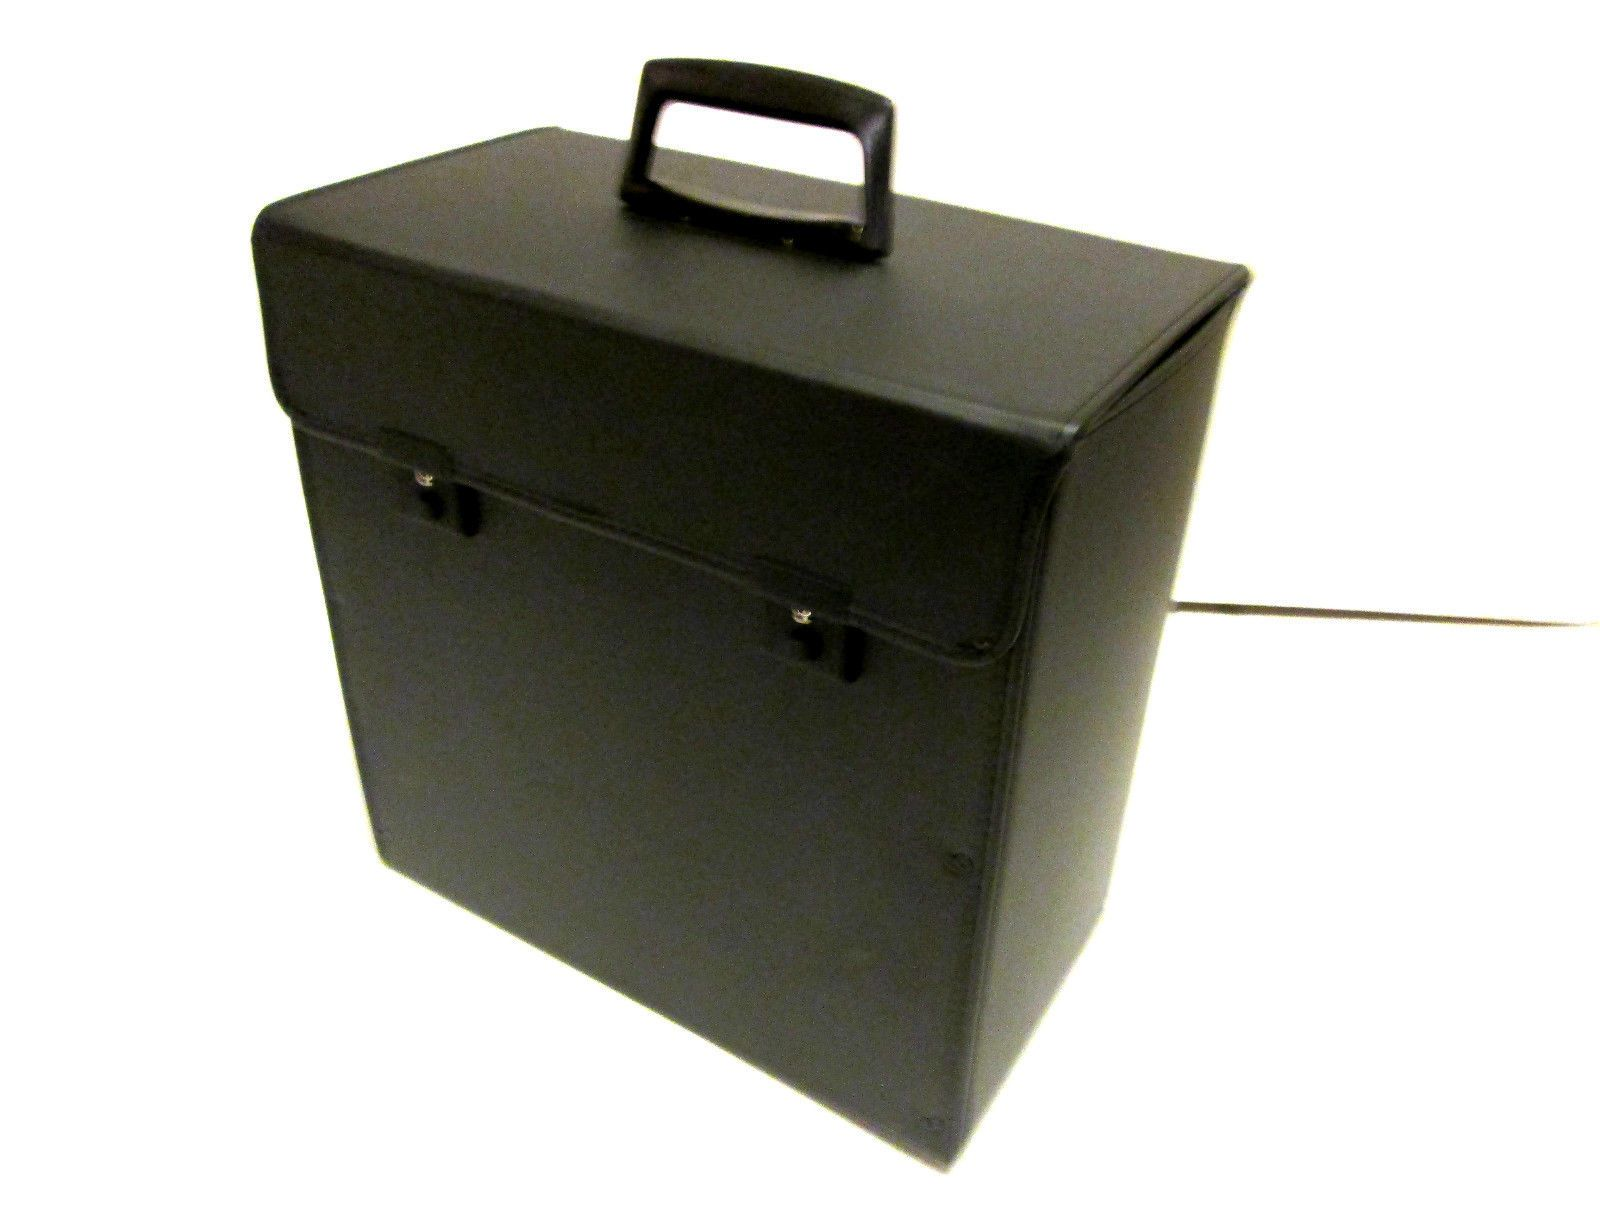 12 Vinyl New Record Storage Box Case For Lp S Brand New Lockable 2 Keys Ebay Record Storage Box Vinyl Record Storage Record Storage